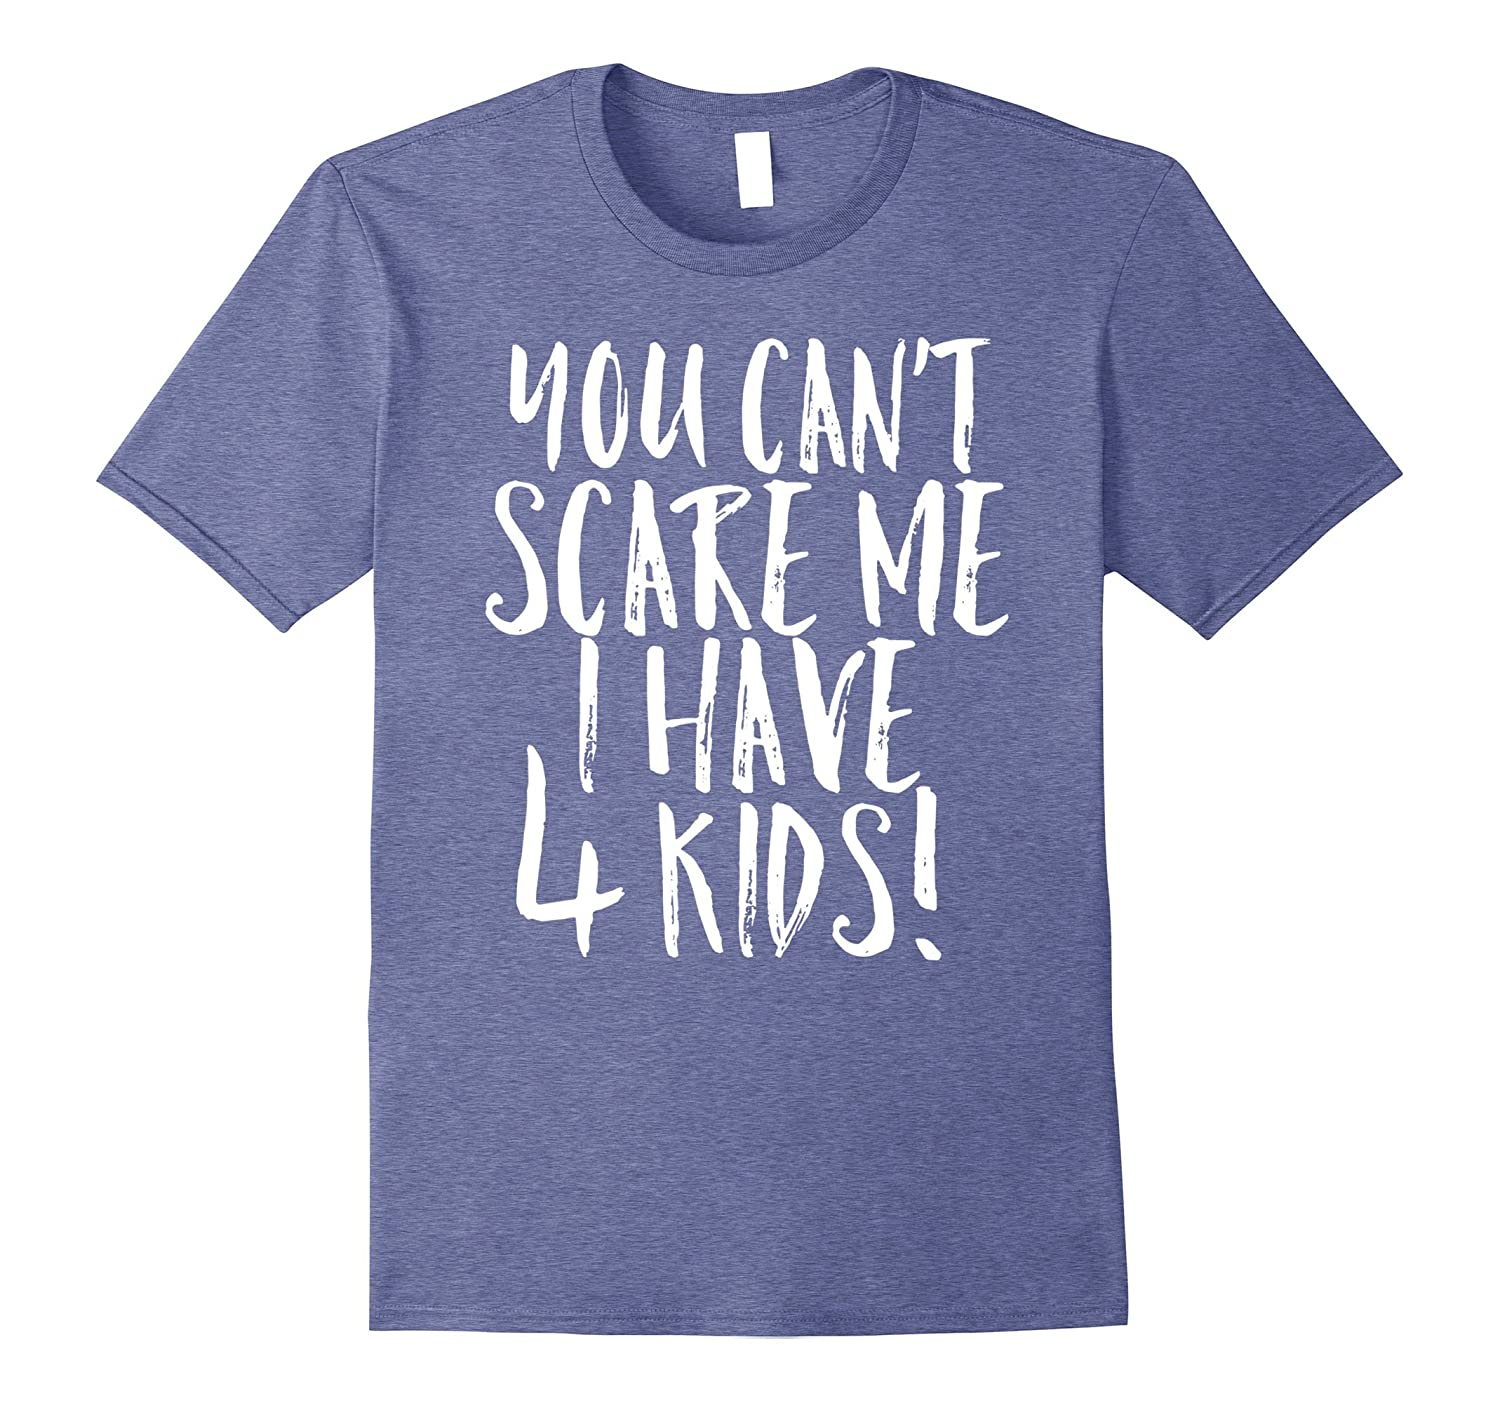 6e5e92d4 You Can't Scare Me I Have 4 Kids Funny Mom Dad Costume Shirt-FL ...